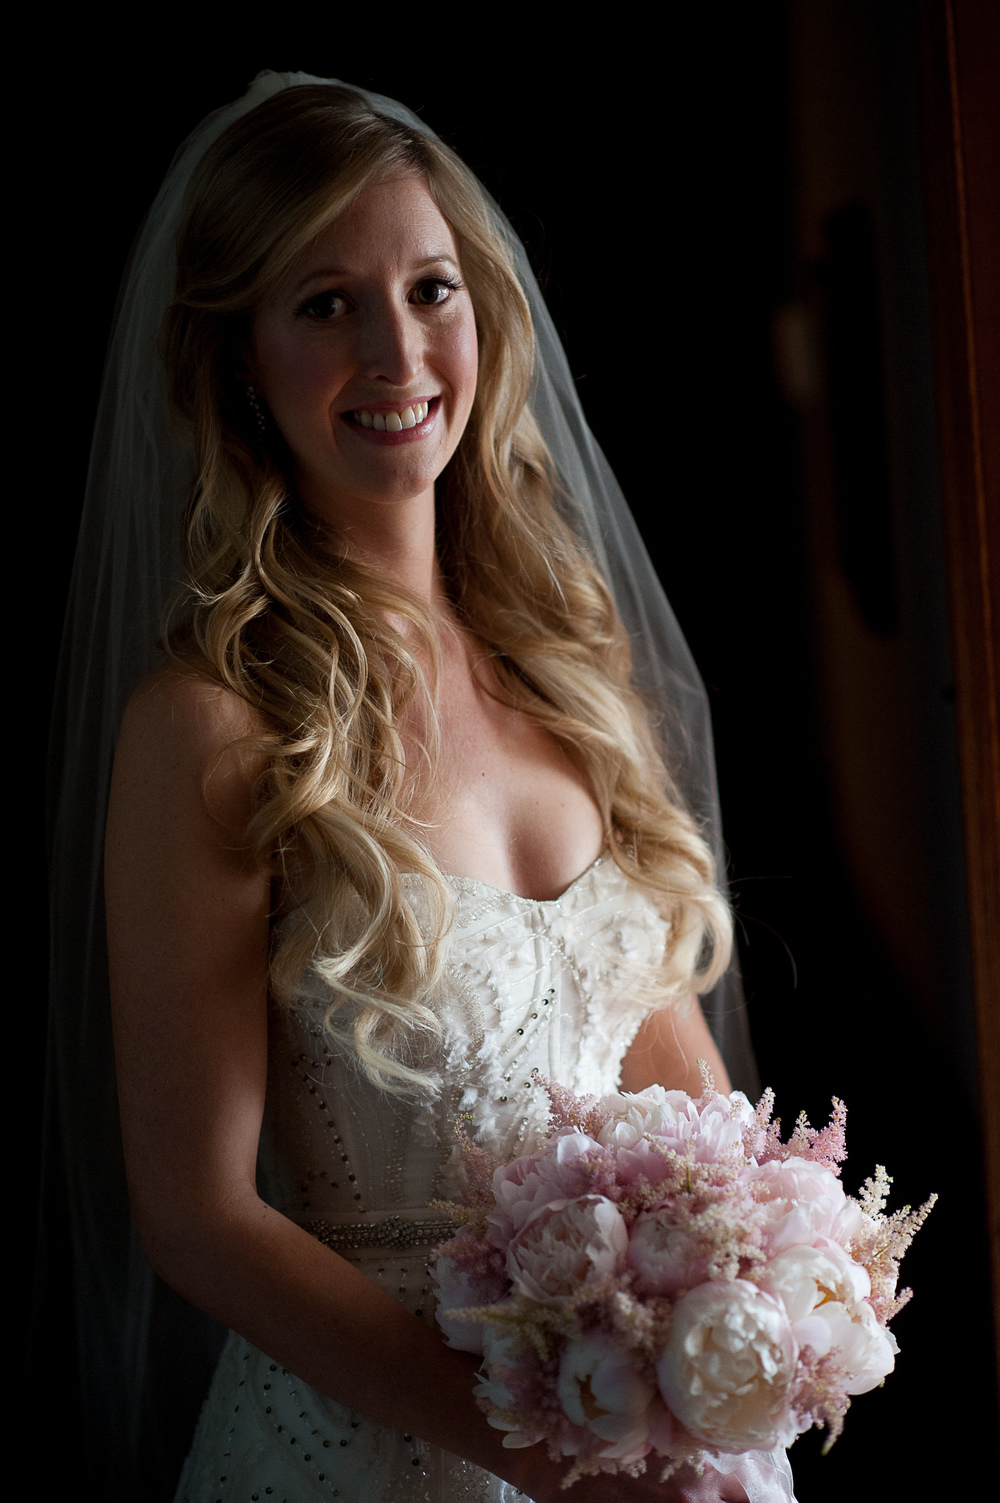 renee-ian-wedding-slideshow-016.jpg